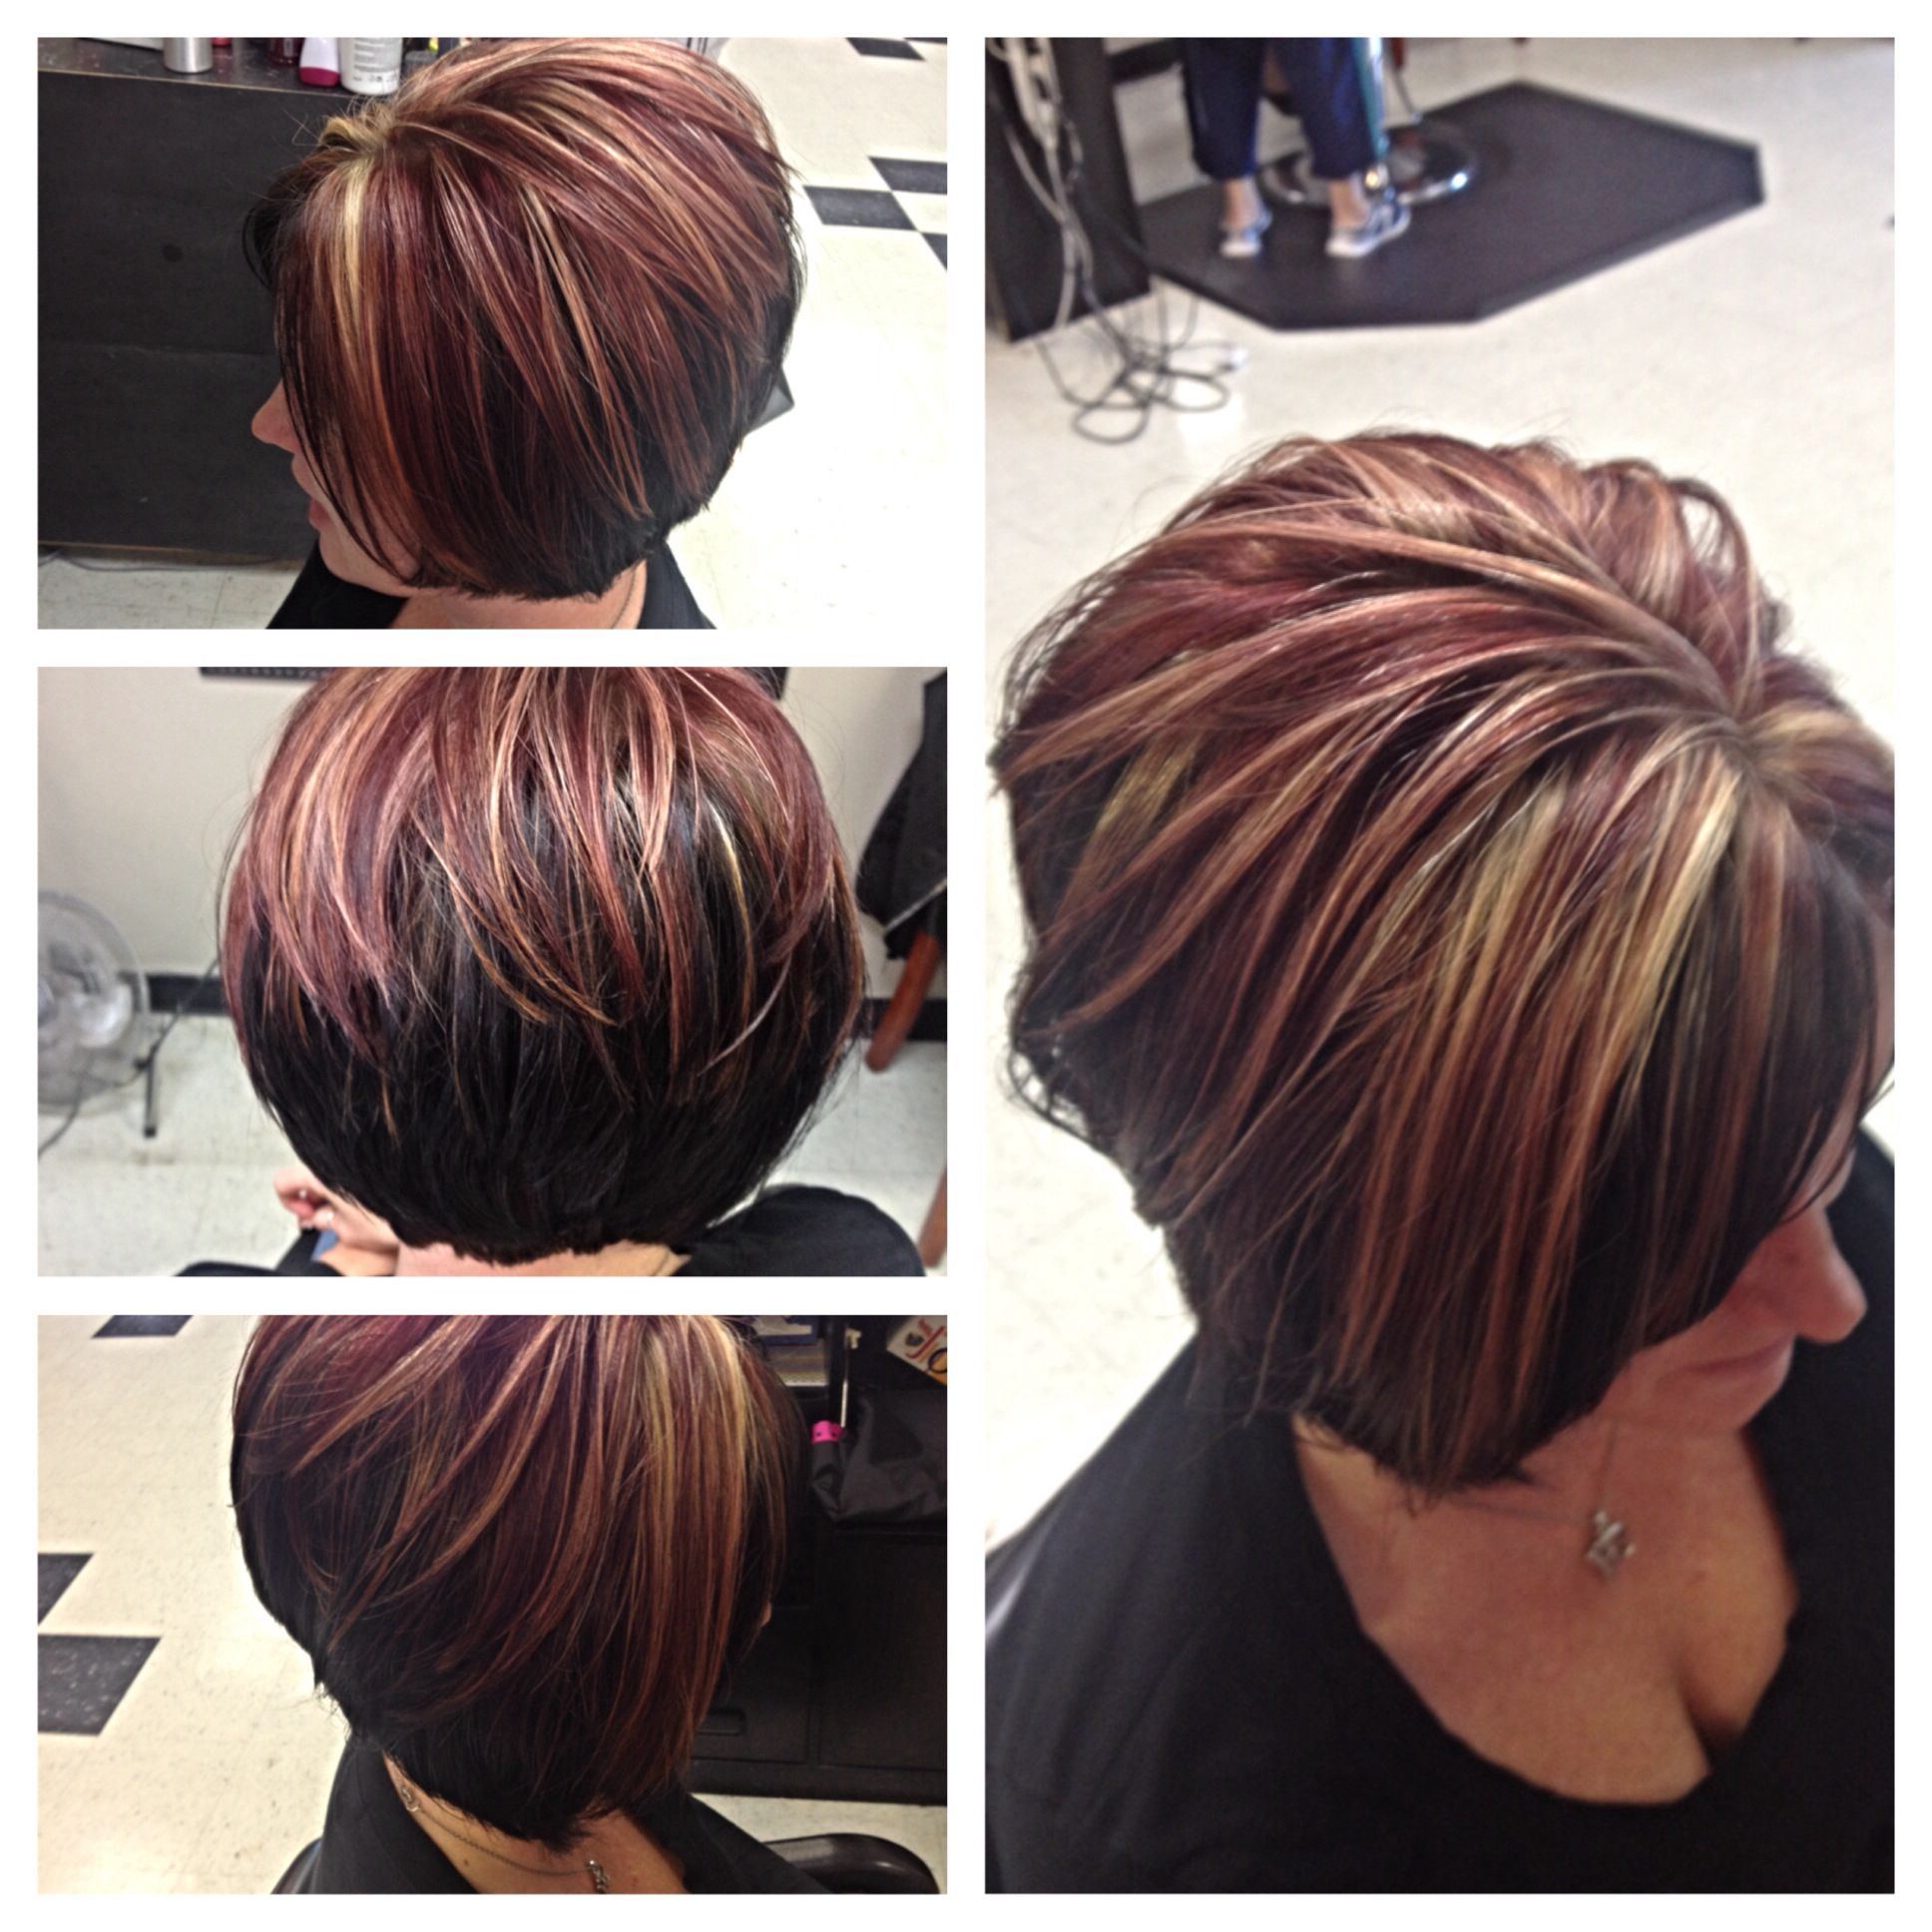 30 New Season Pictures Of Bob Haircuts | Hair Ideas | Pinterest Within Brown And Blonde Graduated Bob Hairstyles (View 9 of 20)